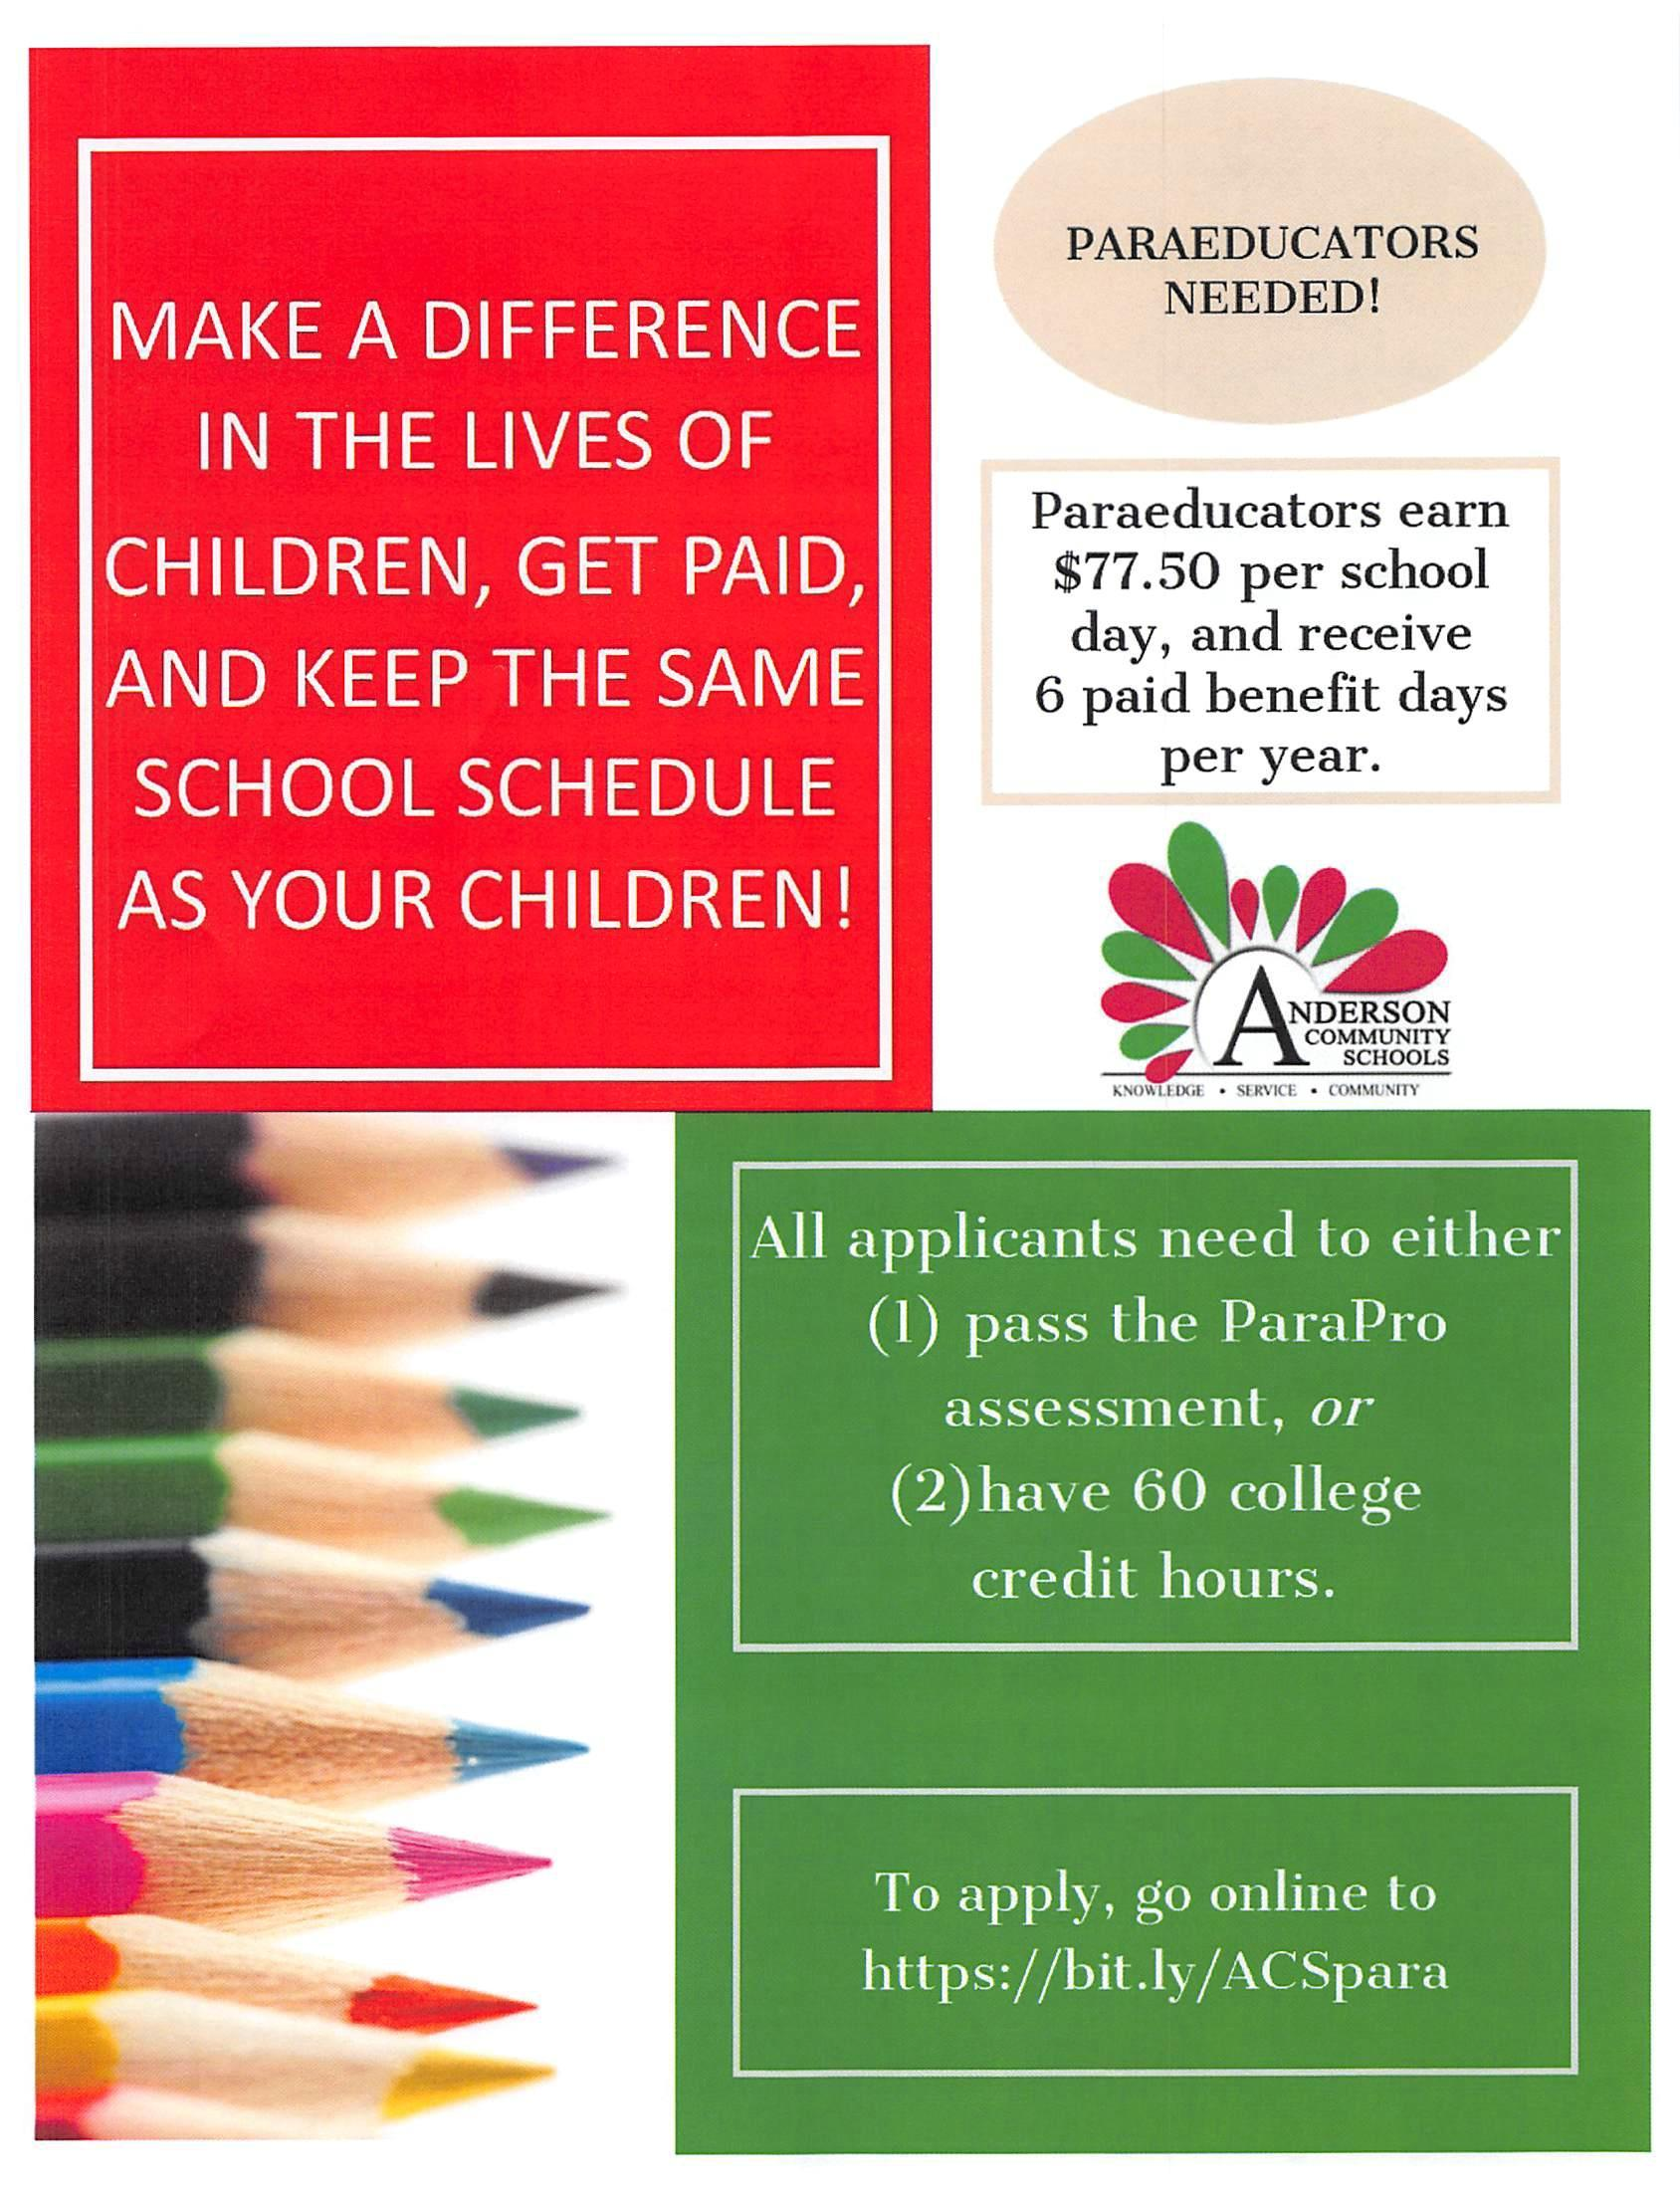 Advertisement for paraeducators for ACSC